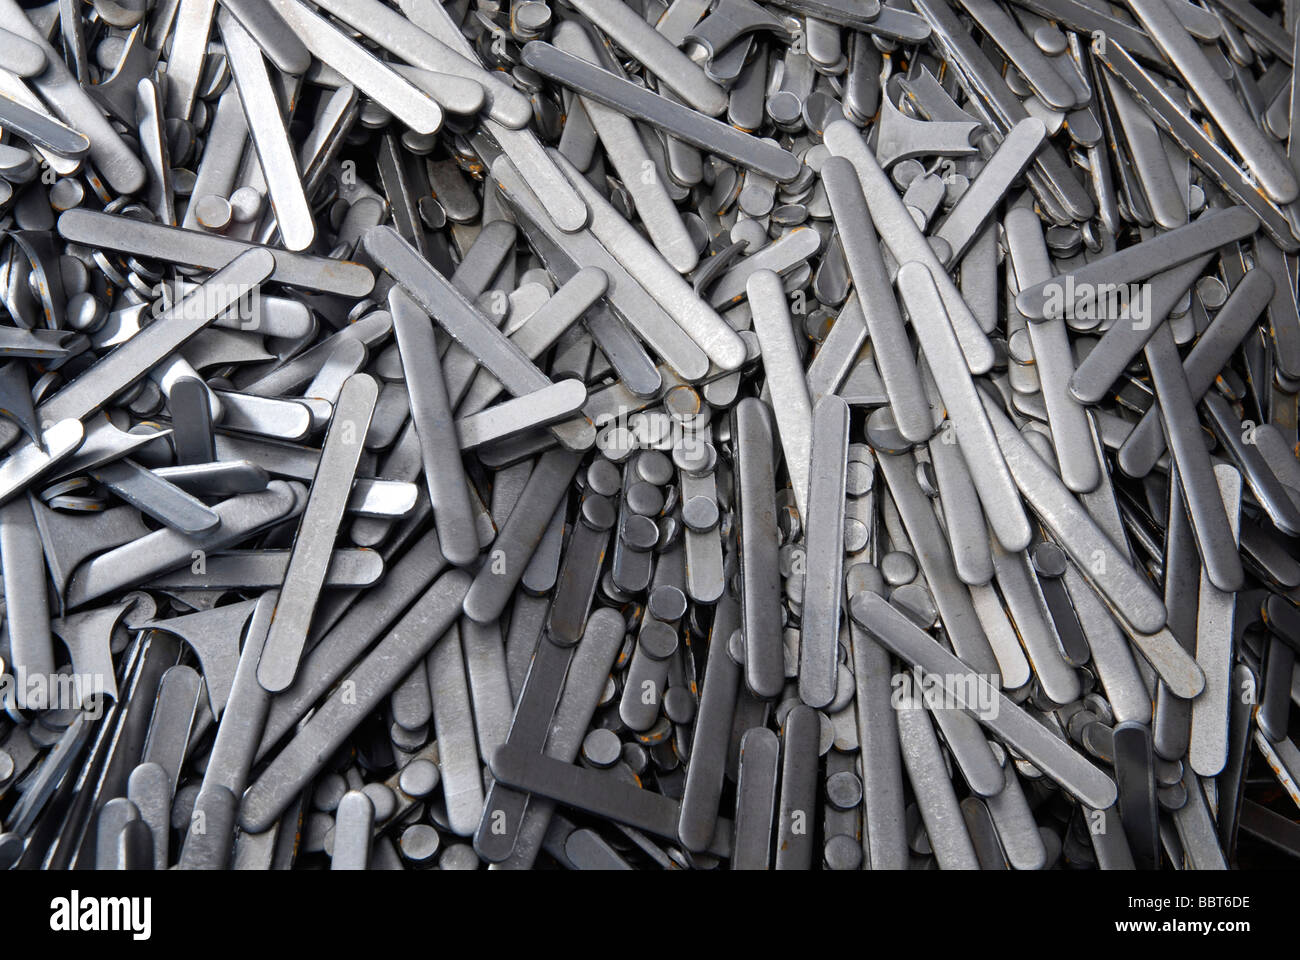 Scrap steel from a pressings factory in the Midlands UK - Stock Image